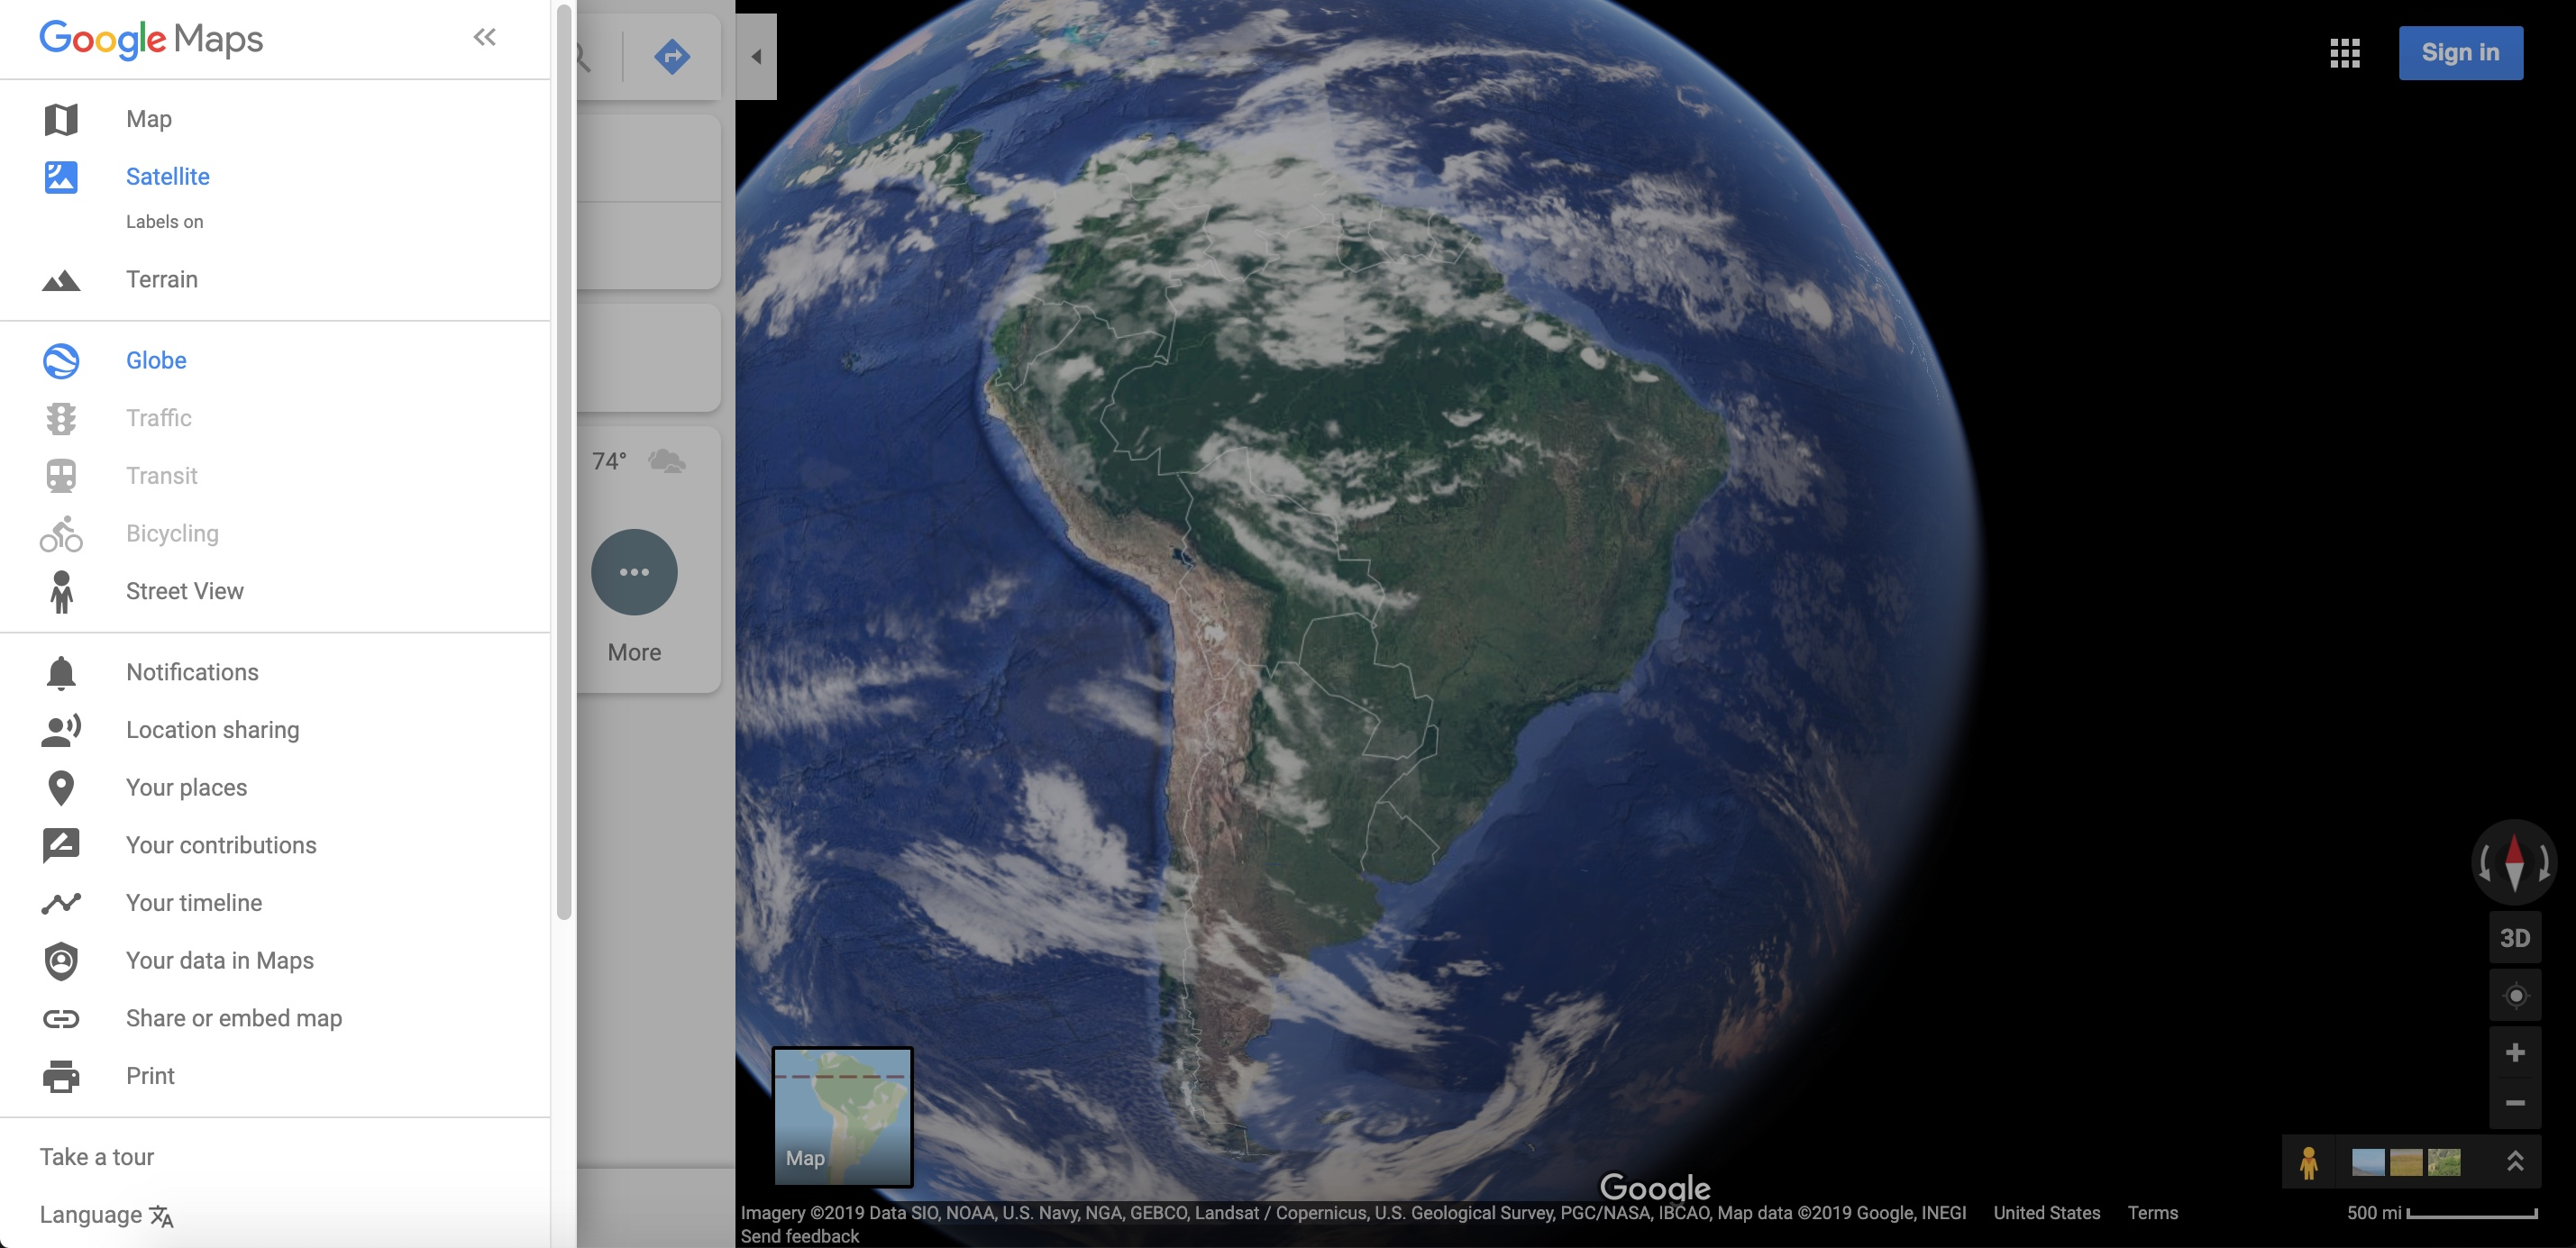 15 Years of Google Maps Website Design History - 48 Images ... on hd map of south america, precipitation of south america, labeled map of south america, physical features of south america, statistics of south america, google maps south america, physical map of south america, thematic map of south america, large map of south america, satellite maps of homes, north america, map of africa and south america, satellite maps of usa, complete map of south america, blank outline map of south america, a blank map of south america, full map of south america, current map of south america, google earth south america, topographic map of south america,